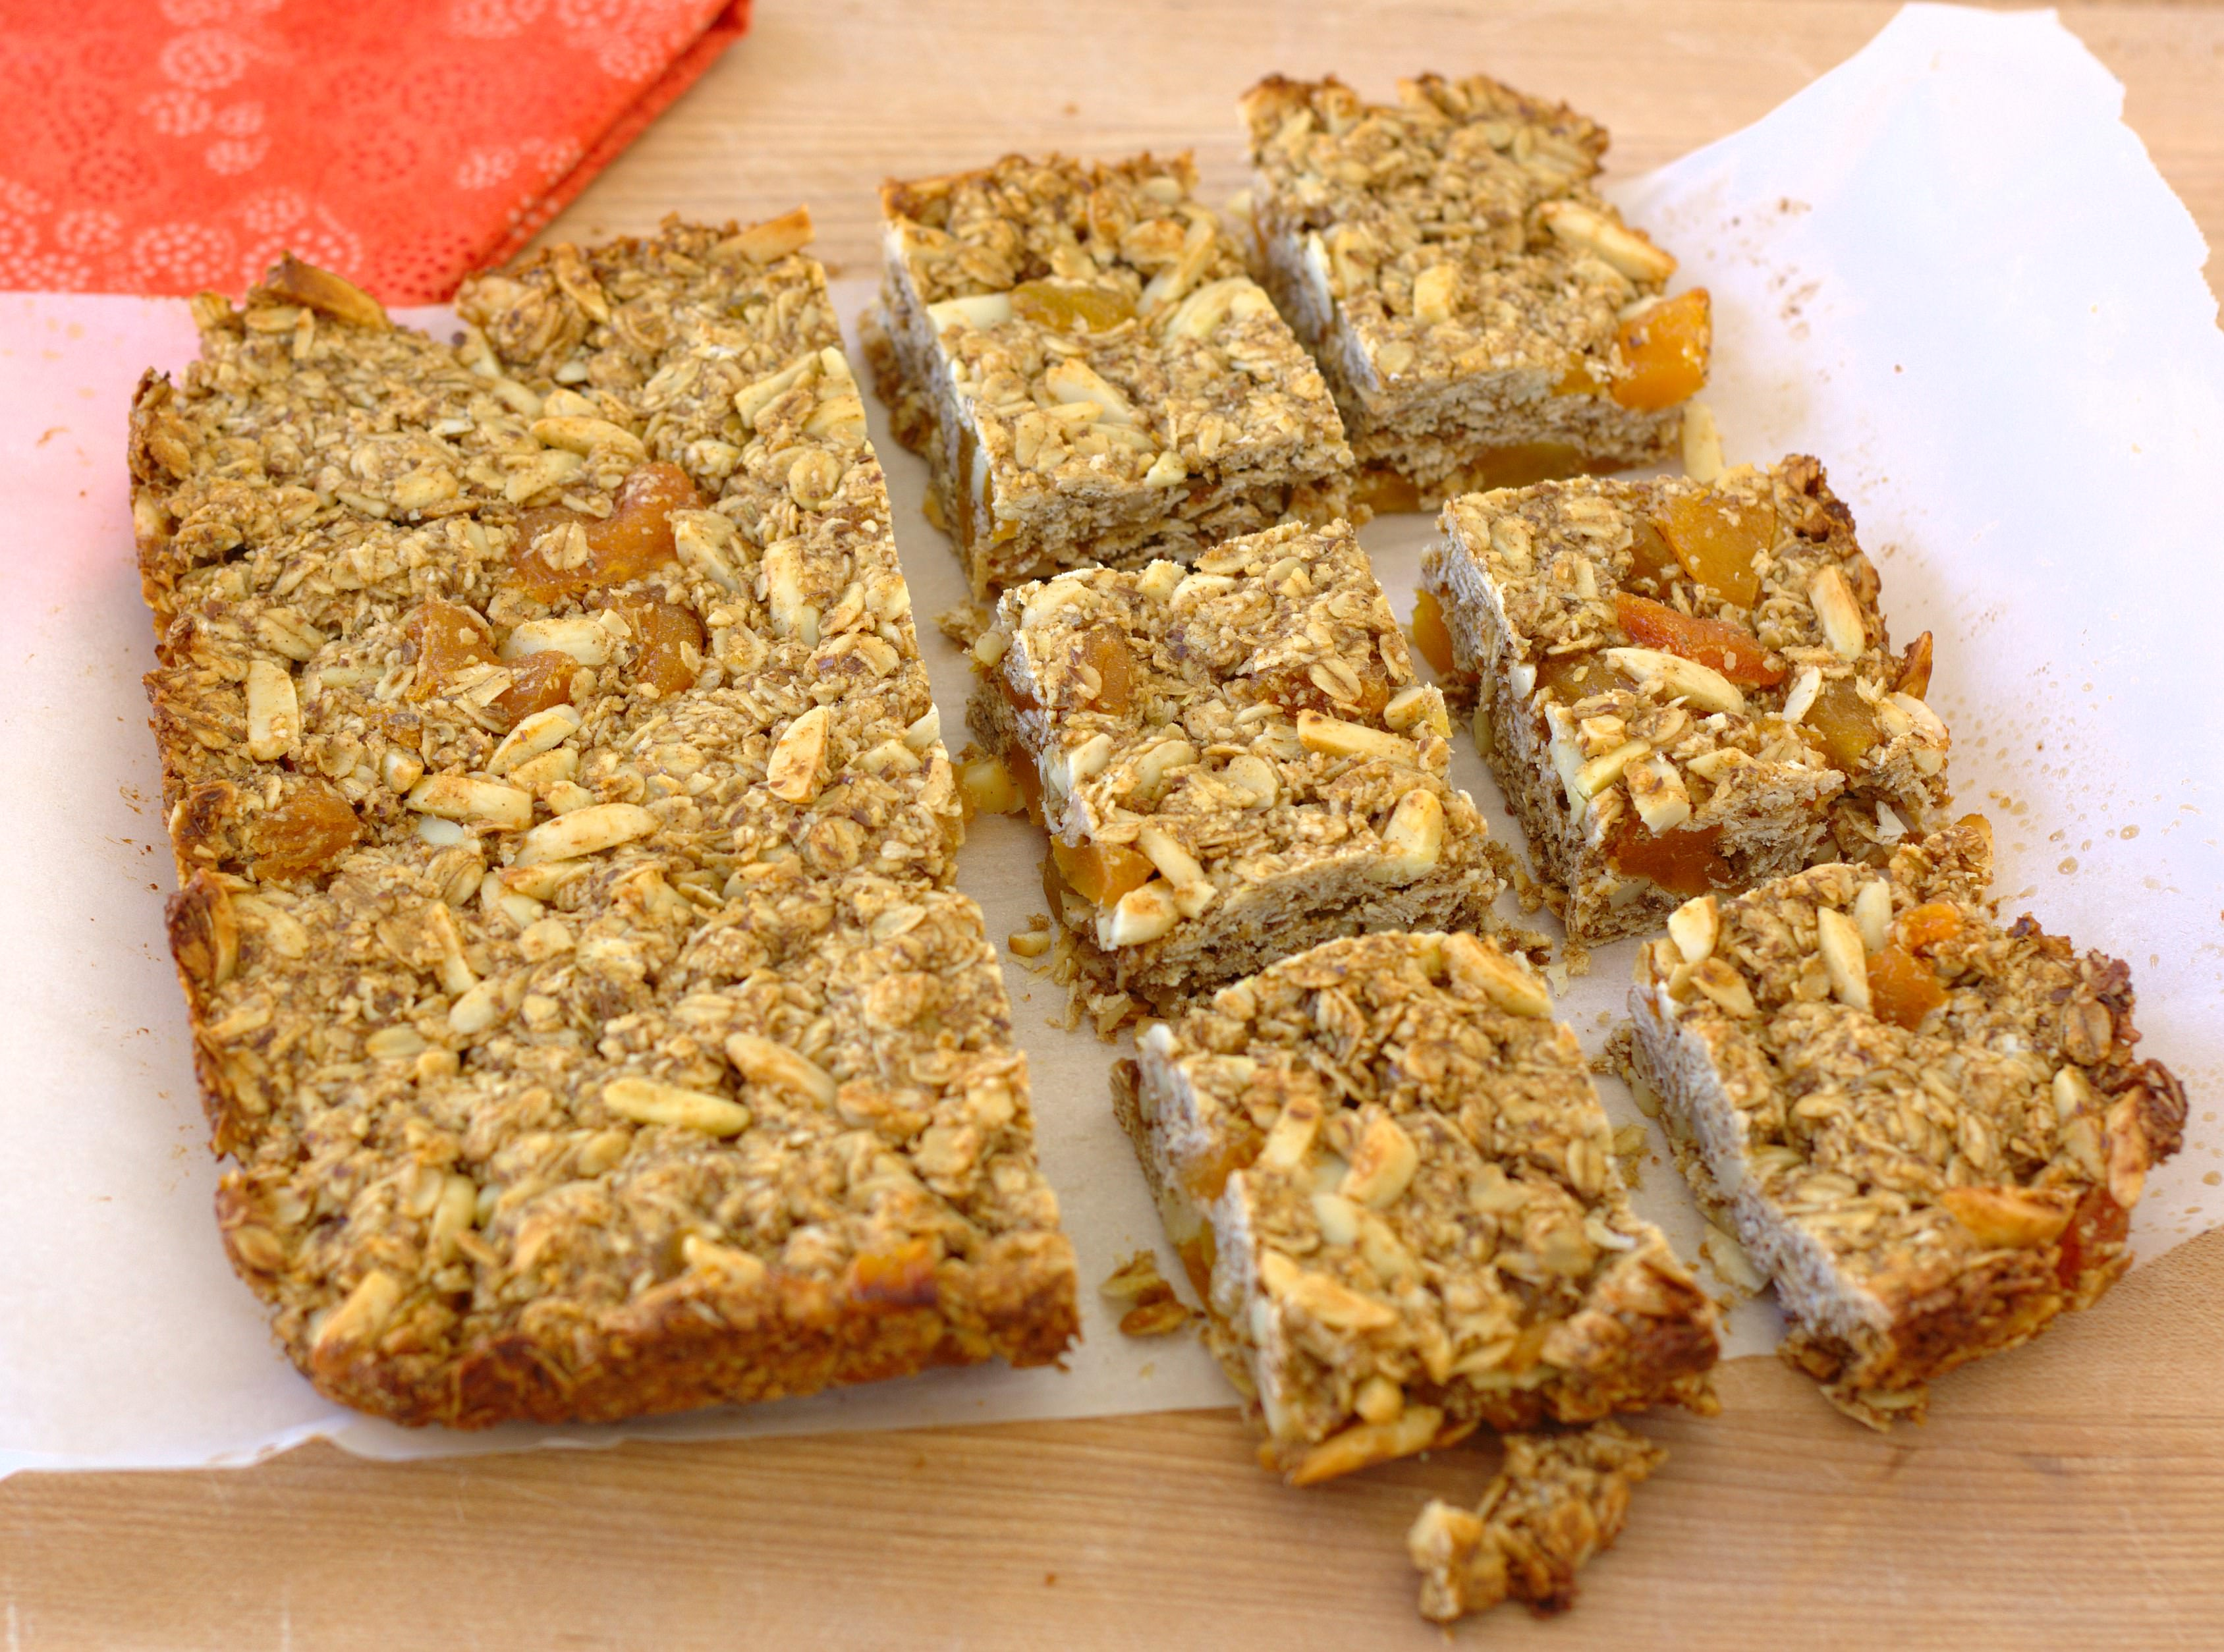 homemade granola bars out of the pan partially cut into squares